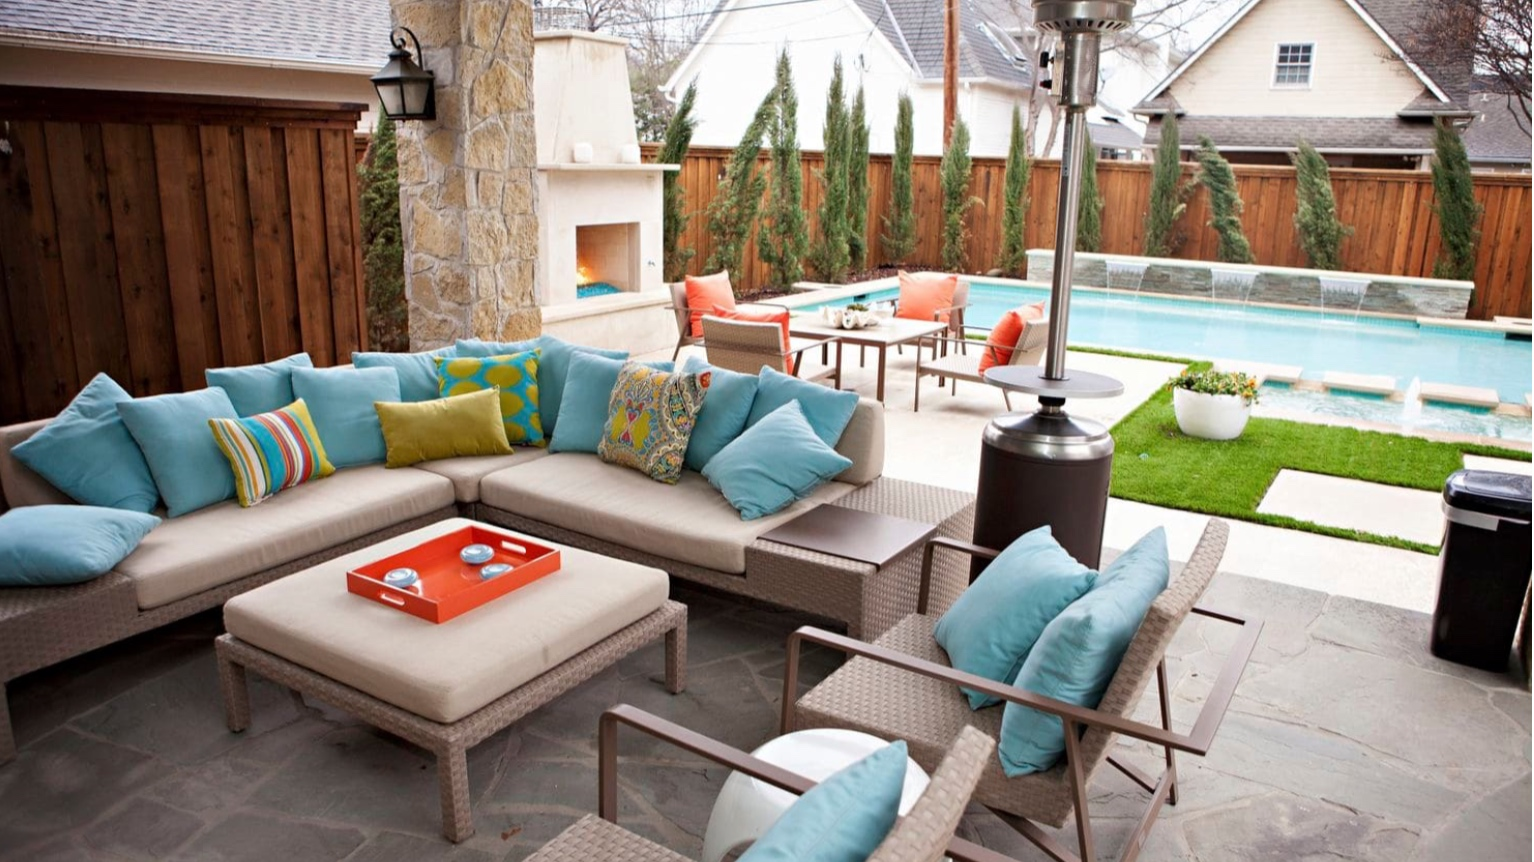 The Washington Post - ASK A DESIGNER: How to design and decorate poolside